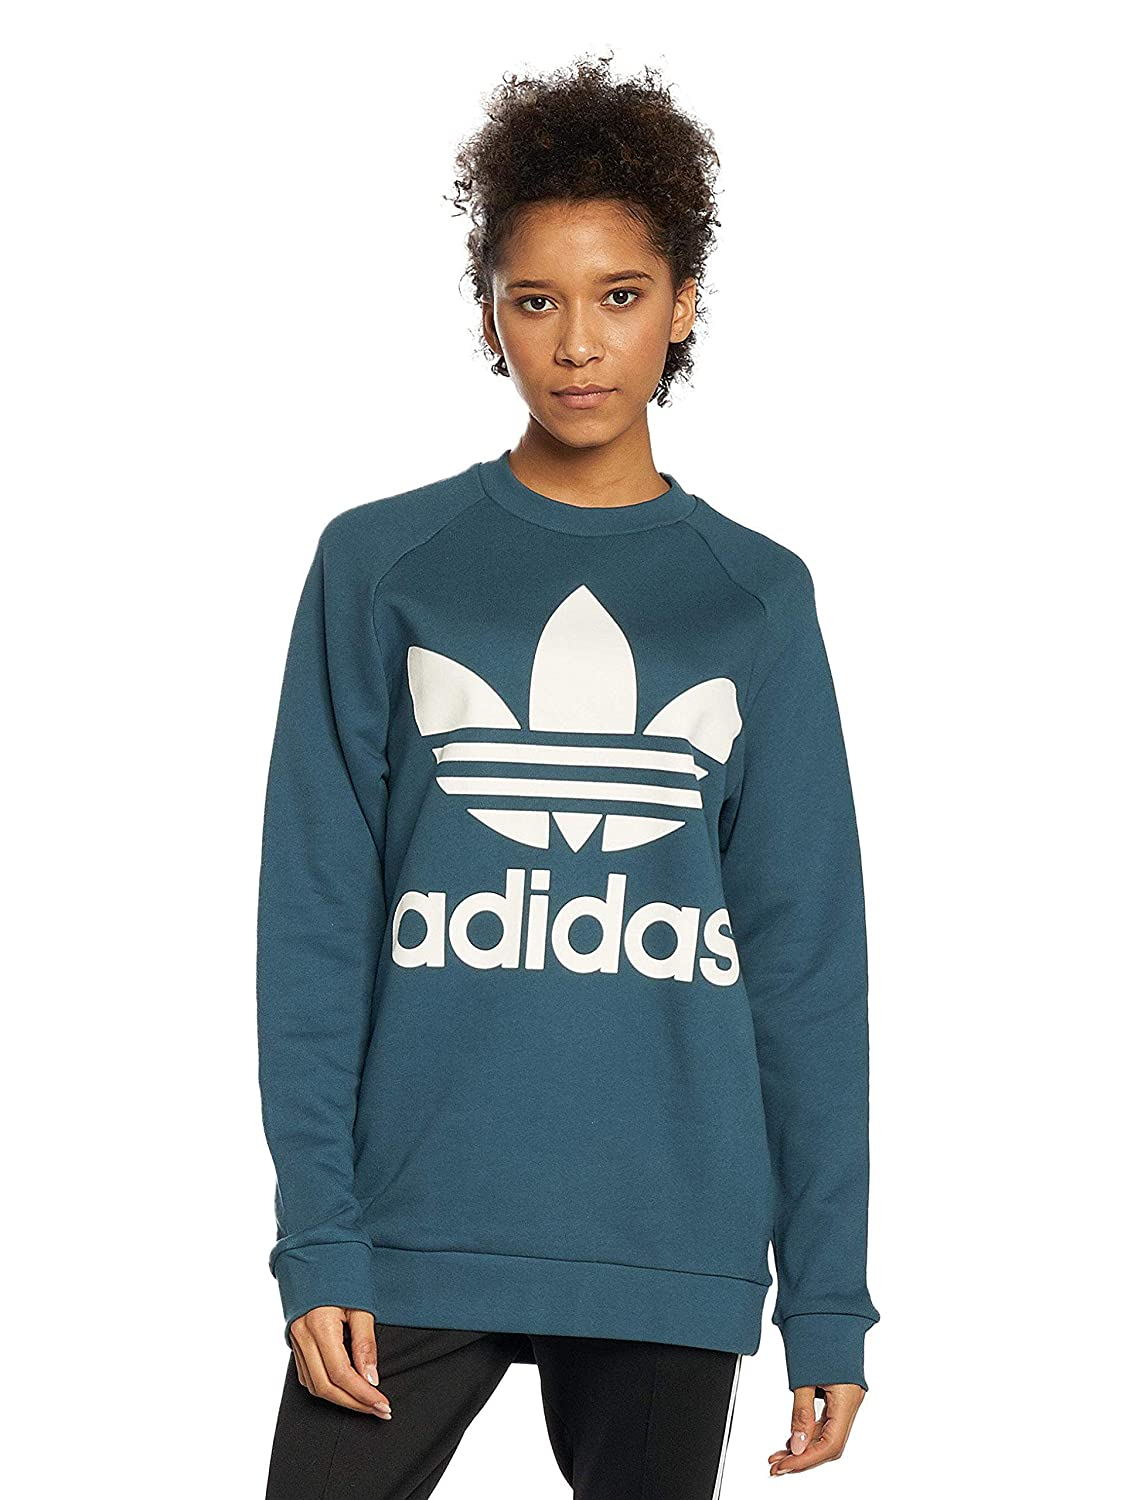 adidas Originals Women's Trefoil Oversize Sweatshirt Dark